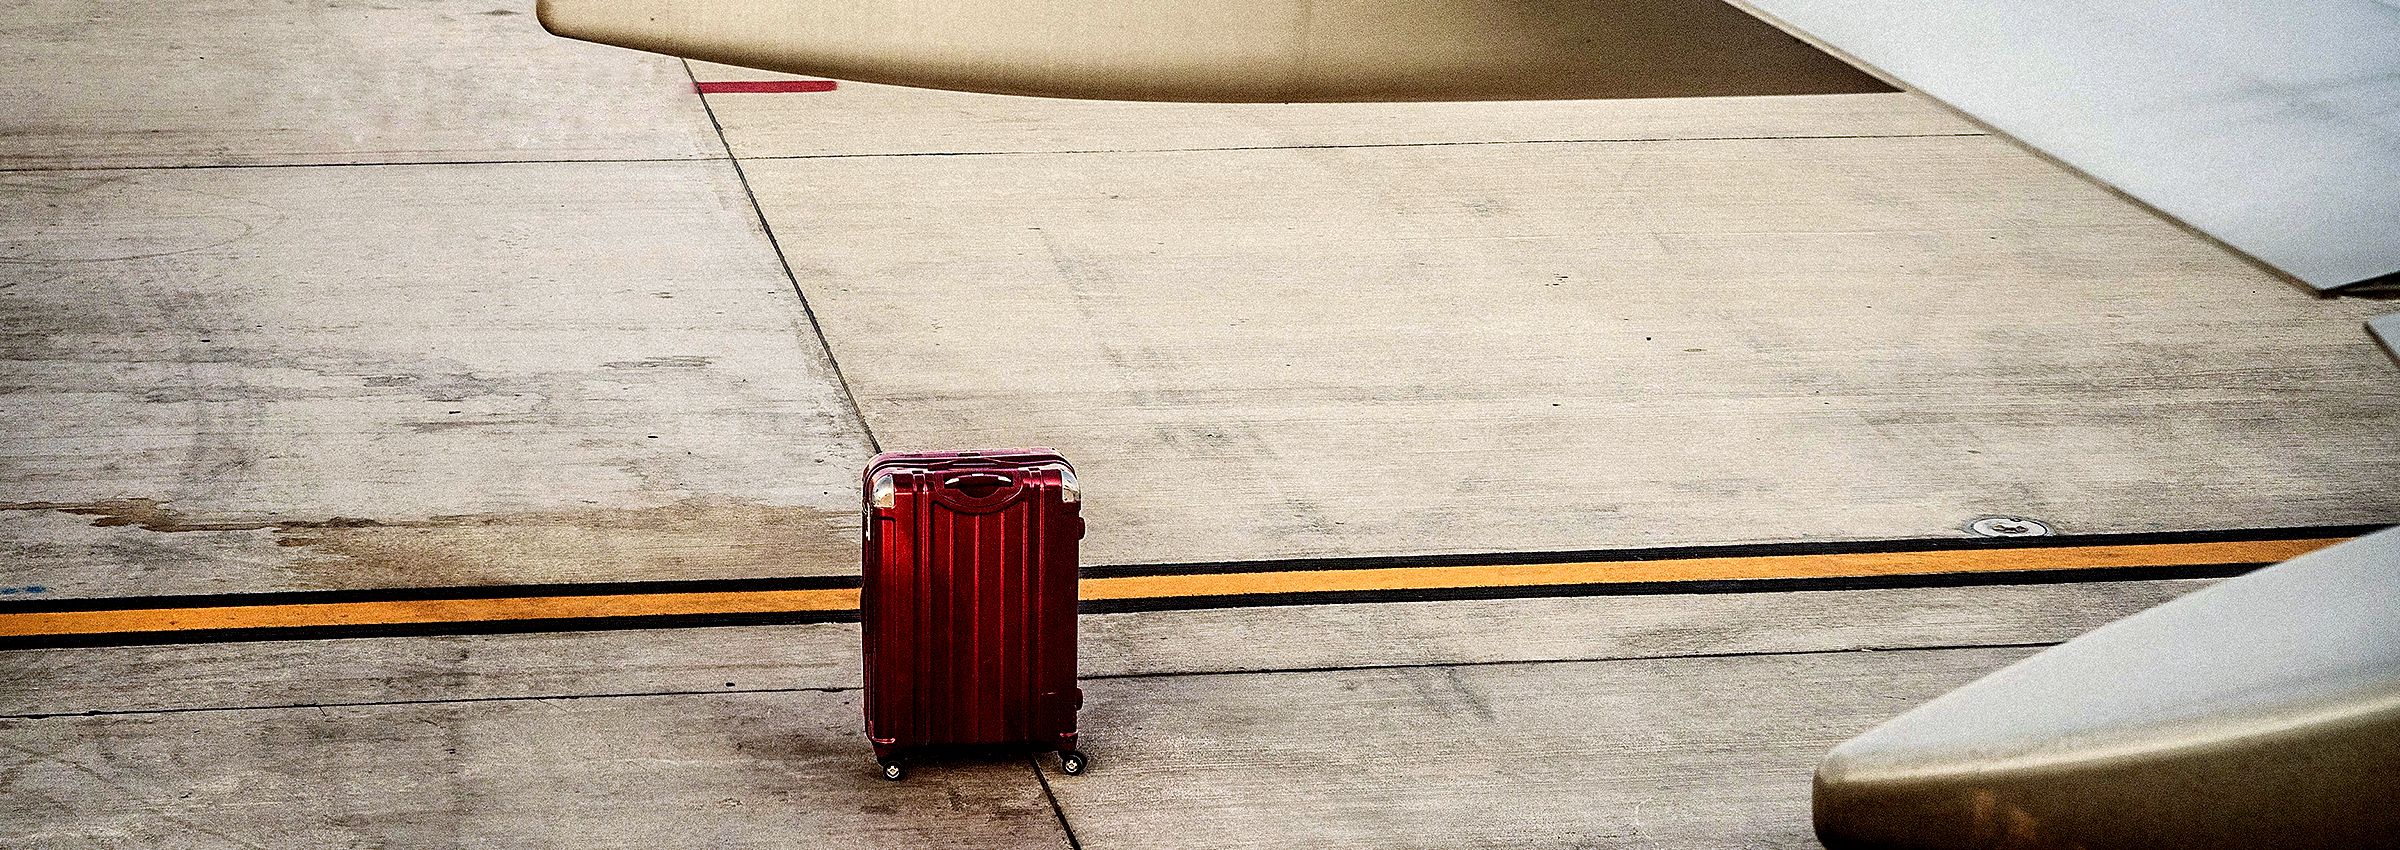 A single red suitcase on the tarmac near an airplane.>From Media Library>From Media Library>From Media Library>From Media Library>From Media Library>From Media Library>From Media Library>From Media Library>From Media Library>From Media Library>From Media Library